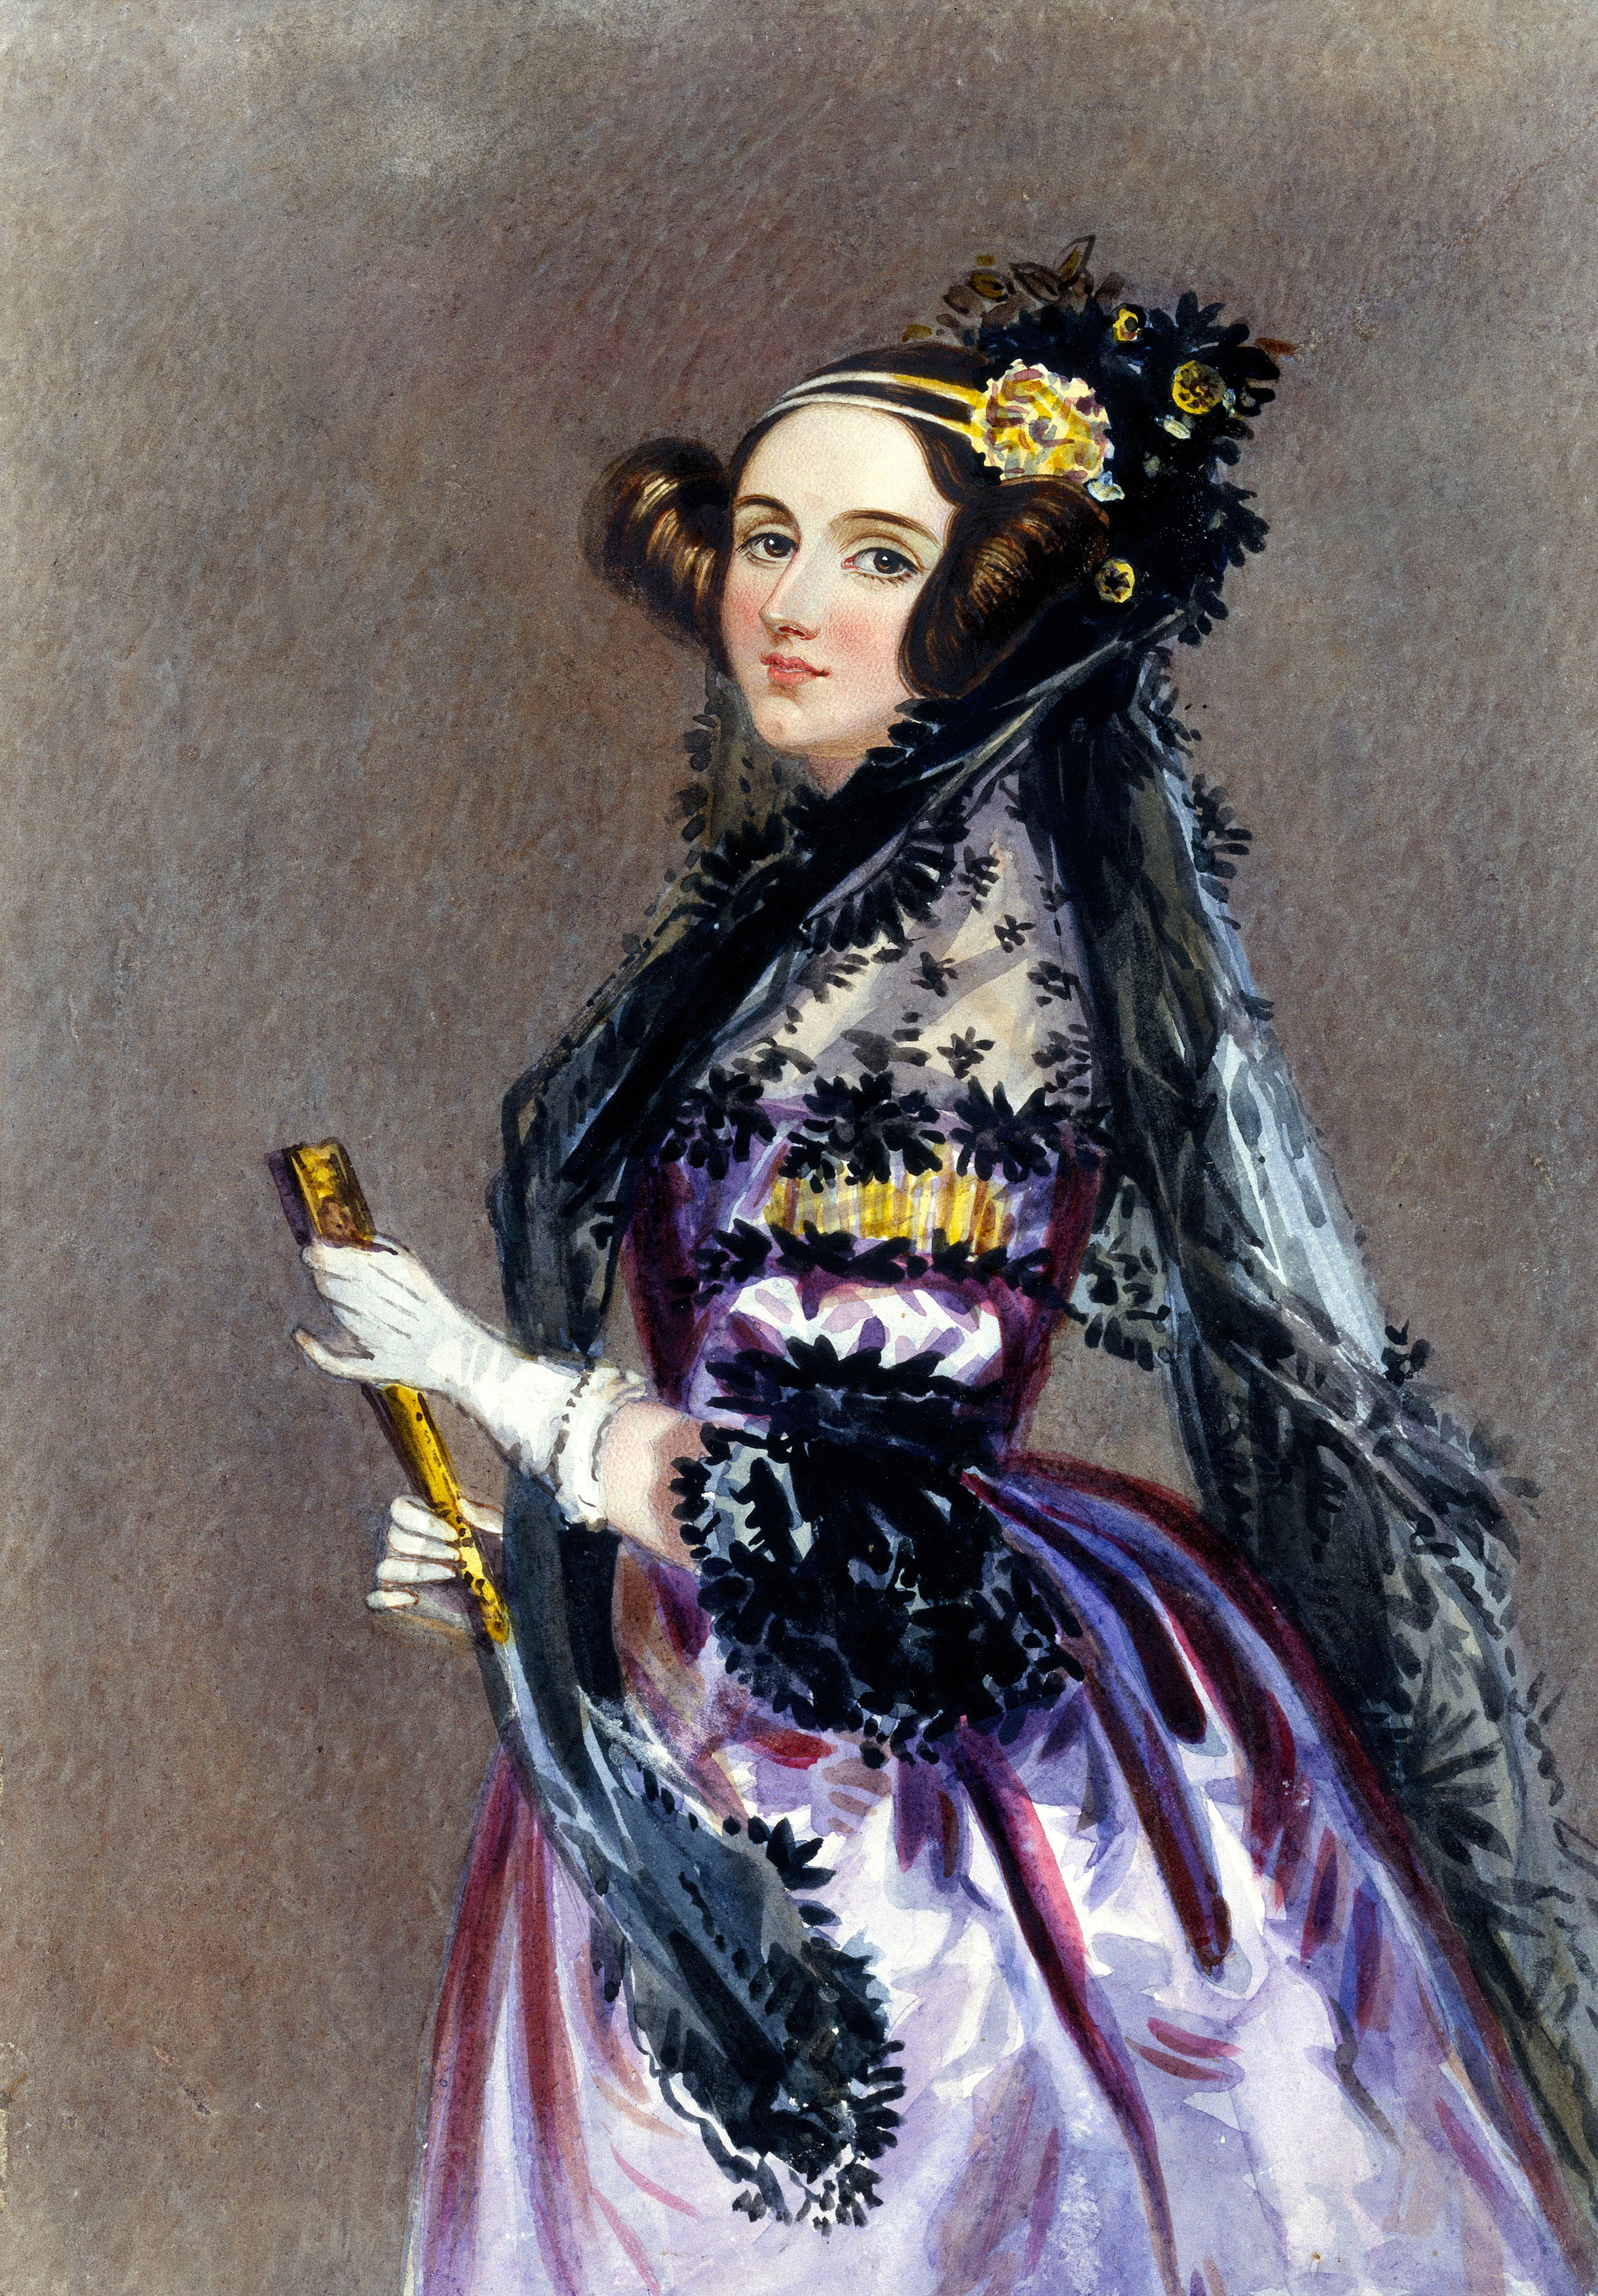 Ada_Lovelace_portrait-1.jpg